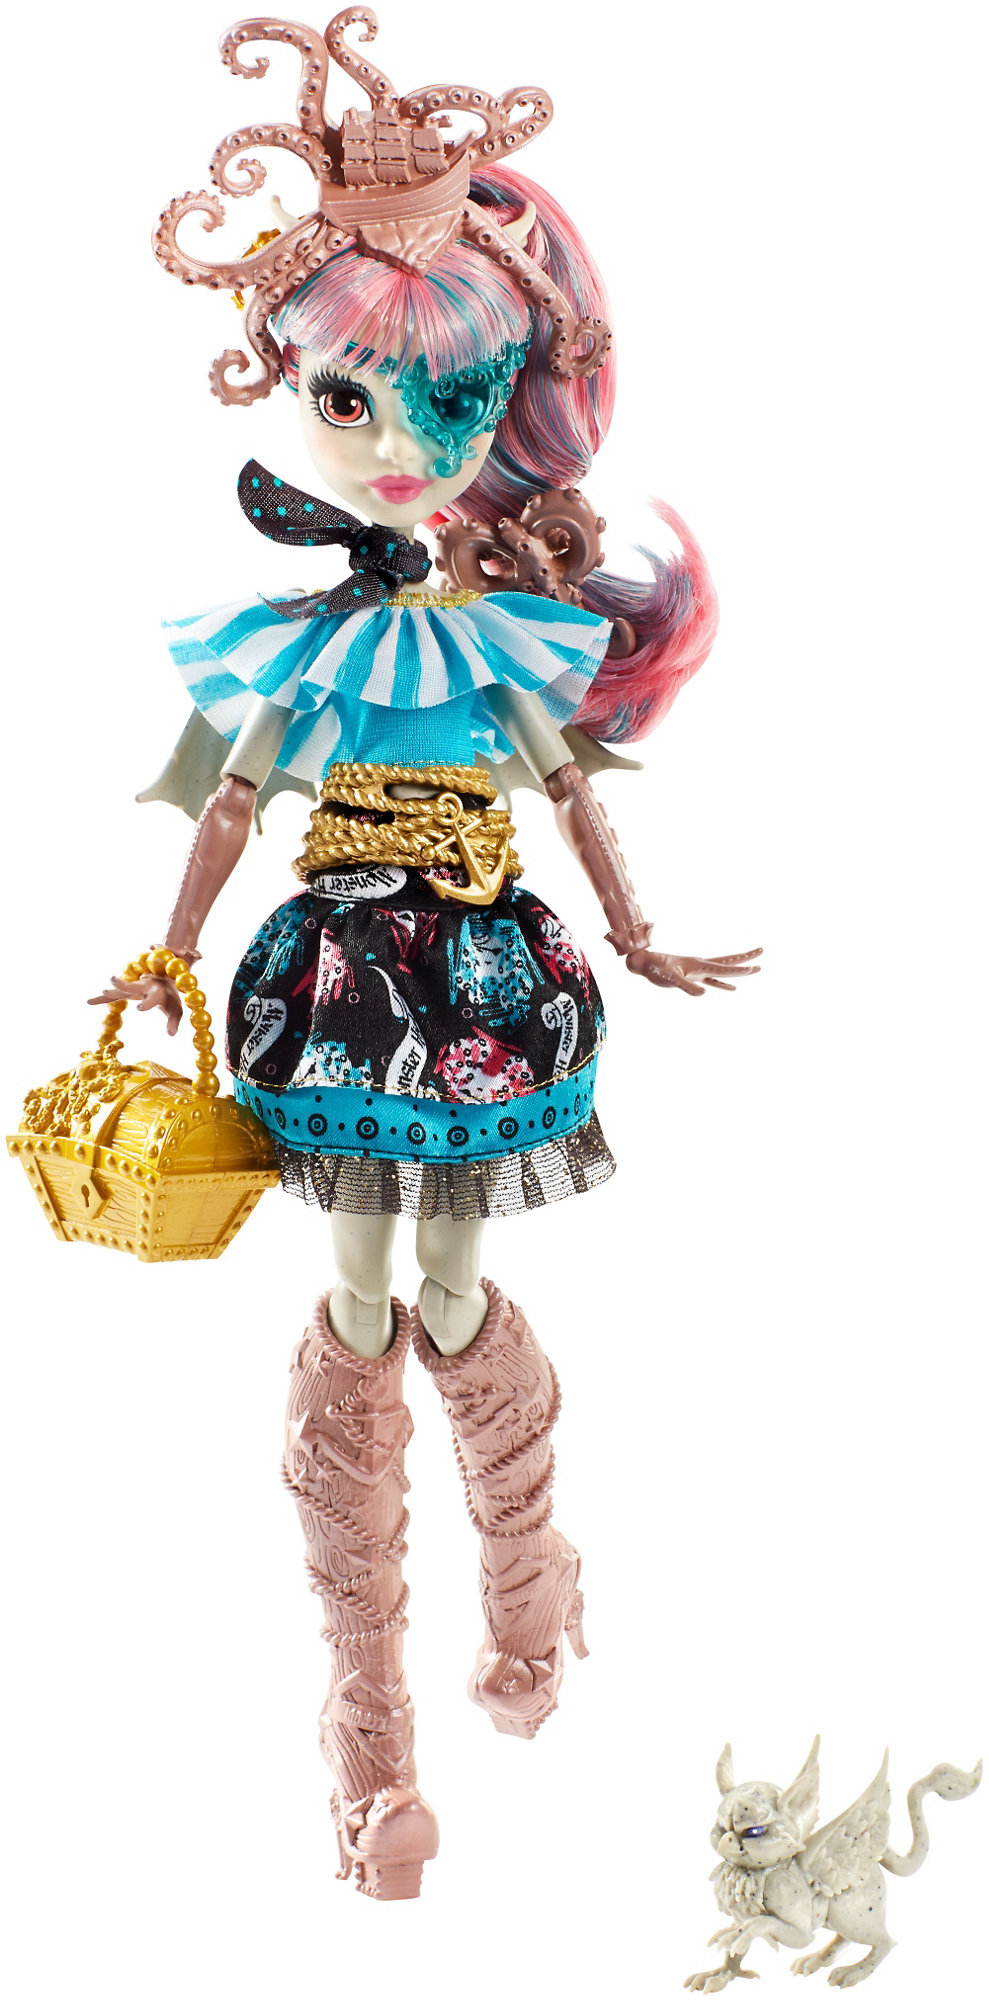 Monster High Shriekwrecked Nautical Ghouls Rochelle Goyle Doll by Mattel